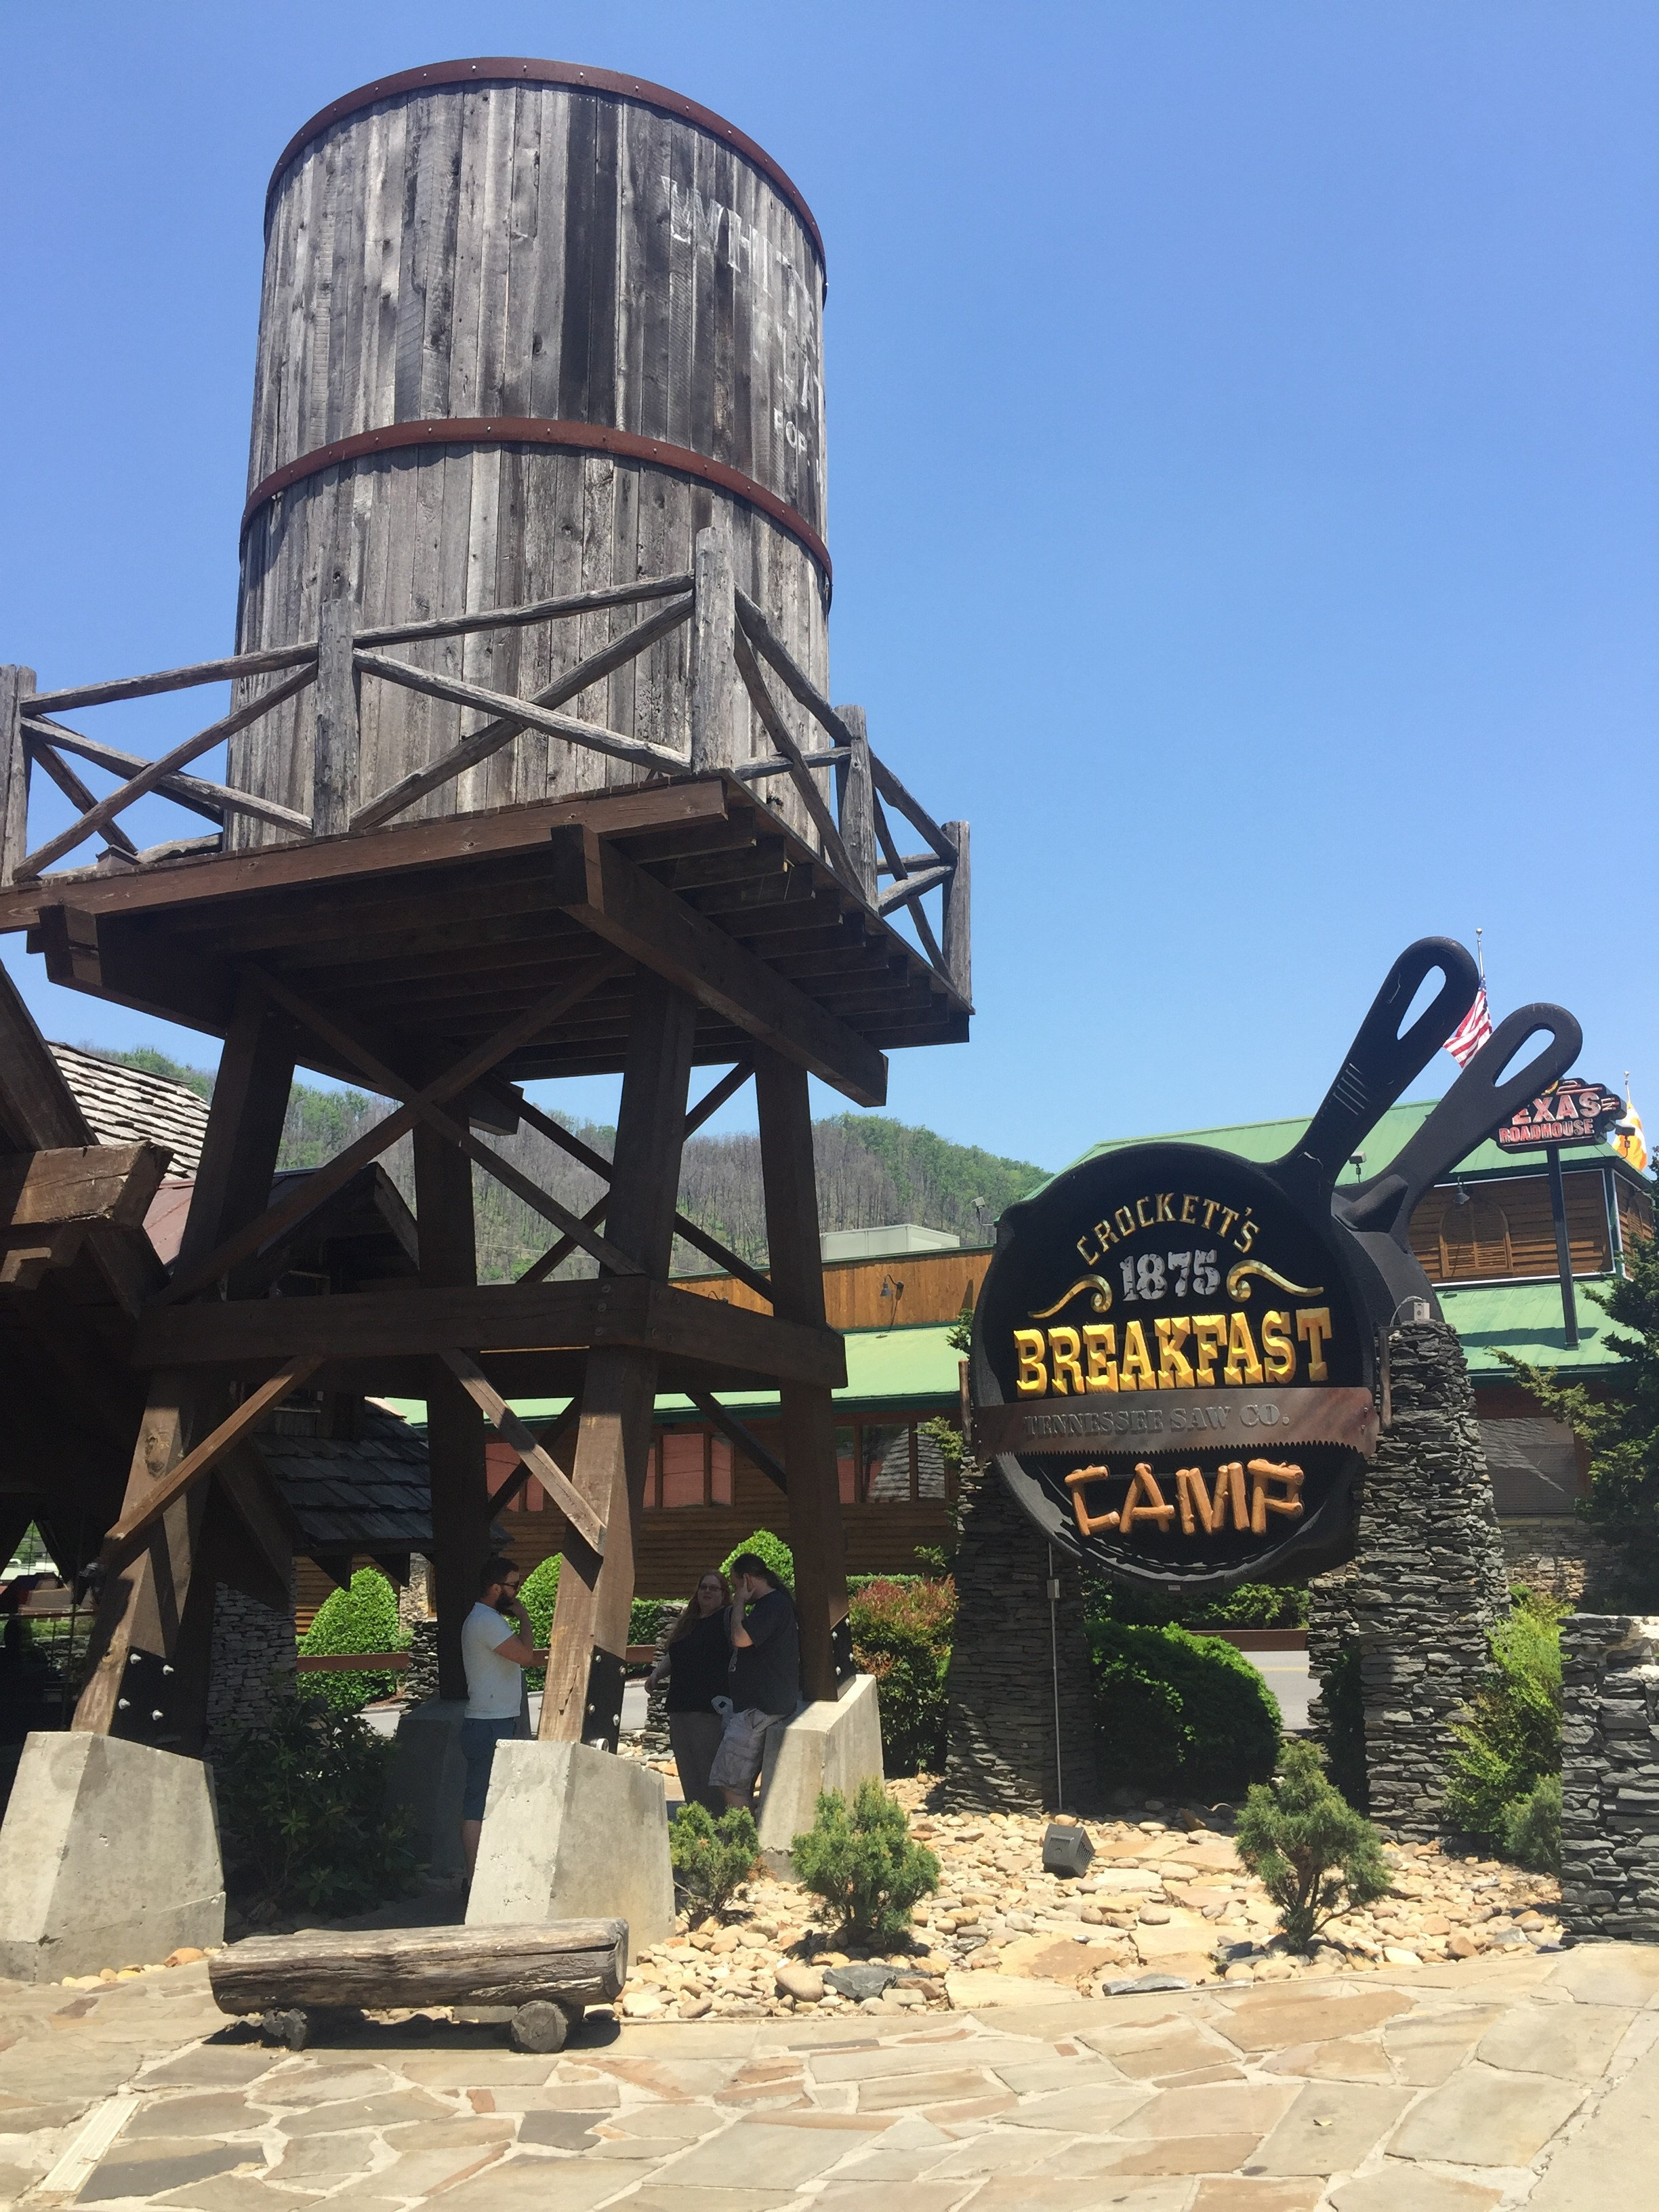 Crocktt's Breakfast Camp building